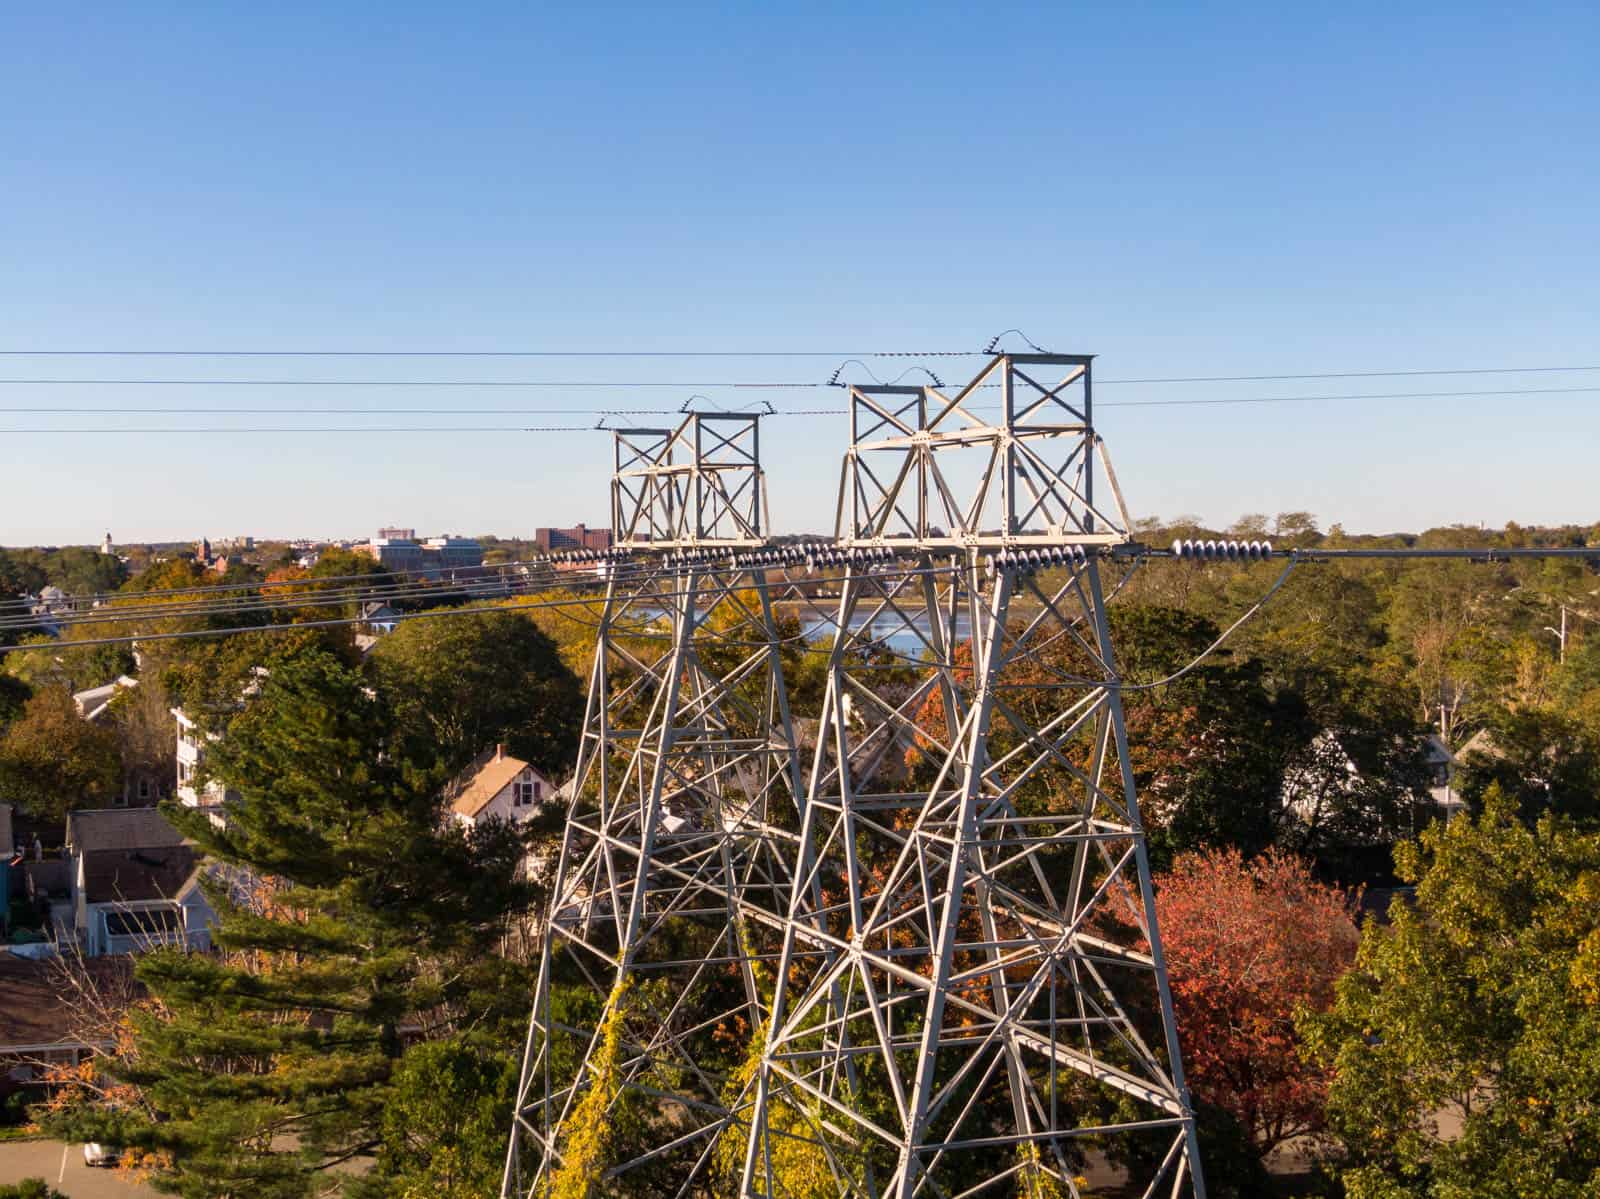 drone photo of power lines in Salem, MA